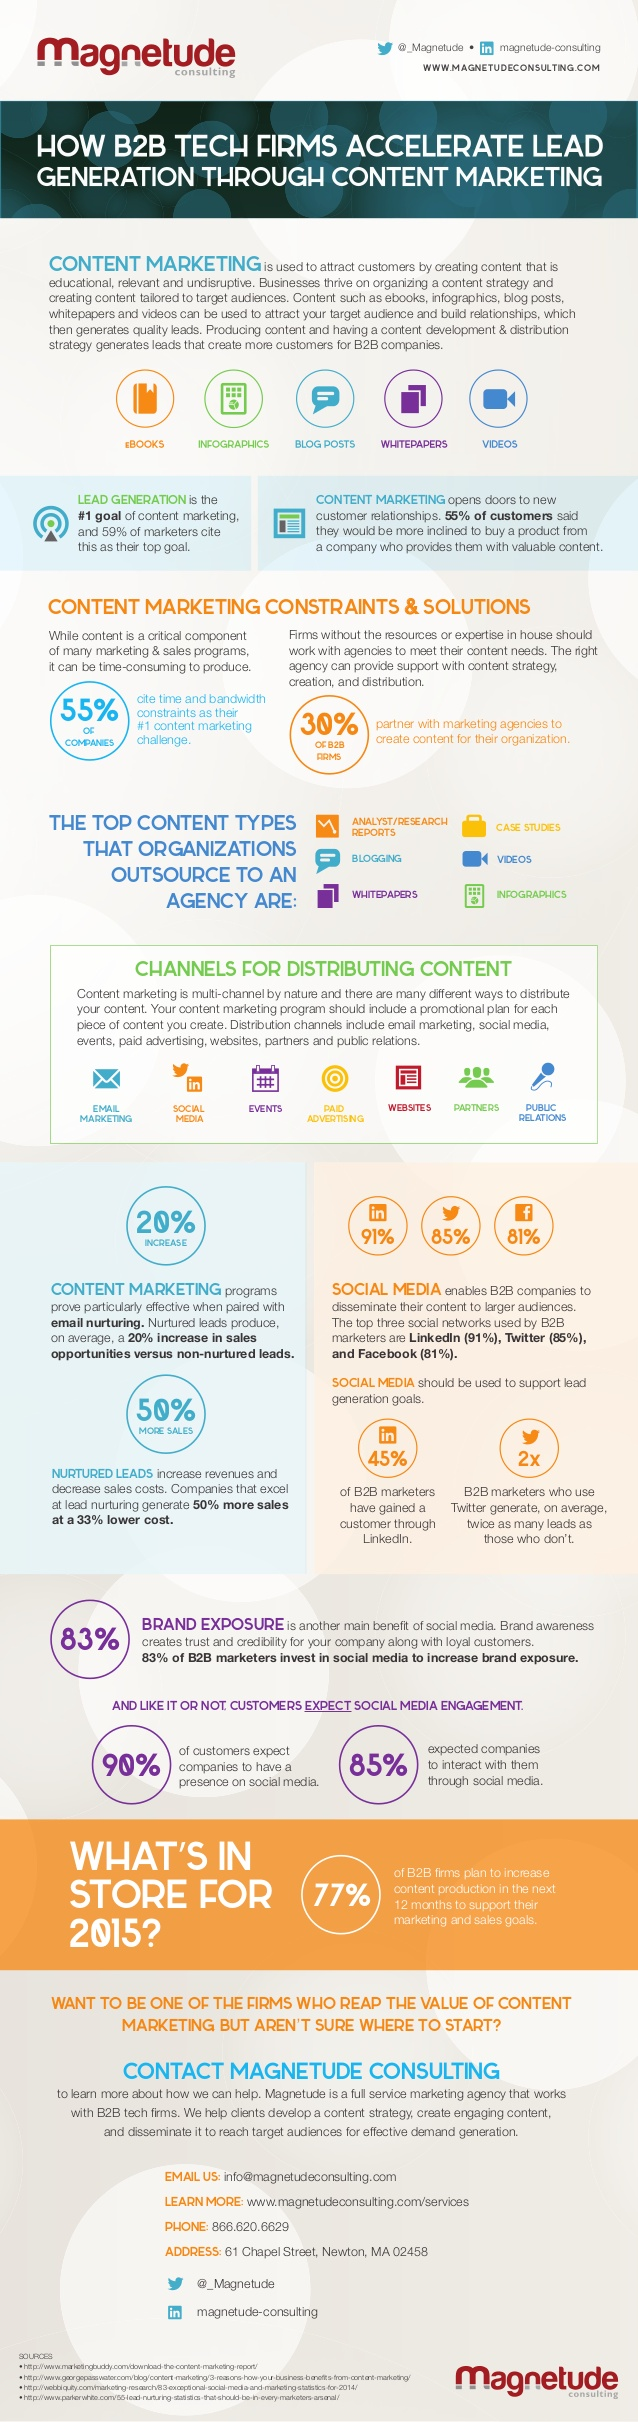 Lead Generation with Content